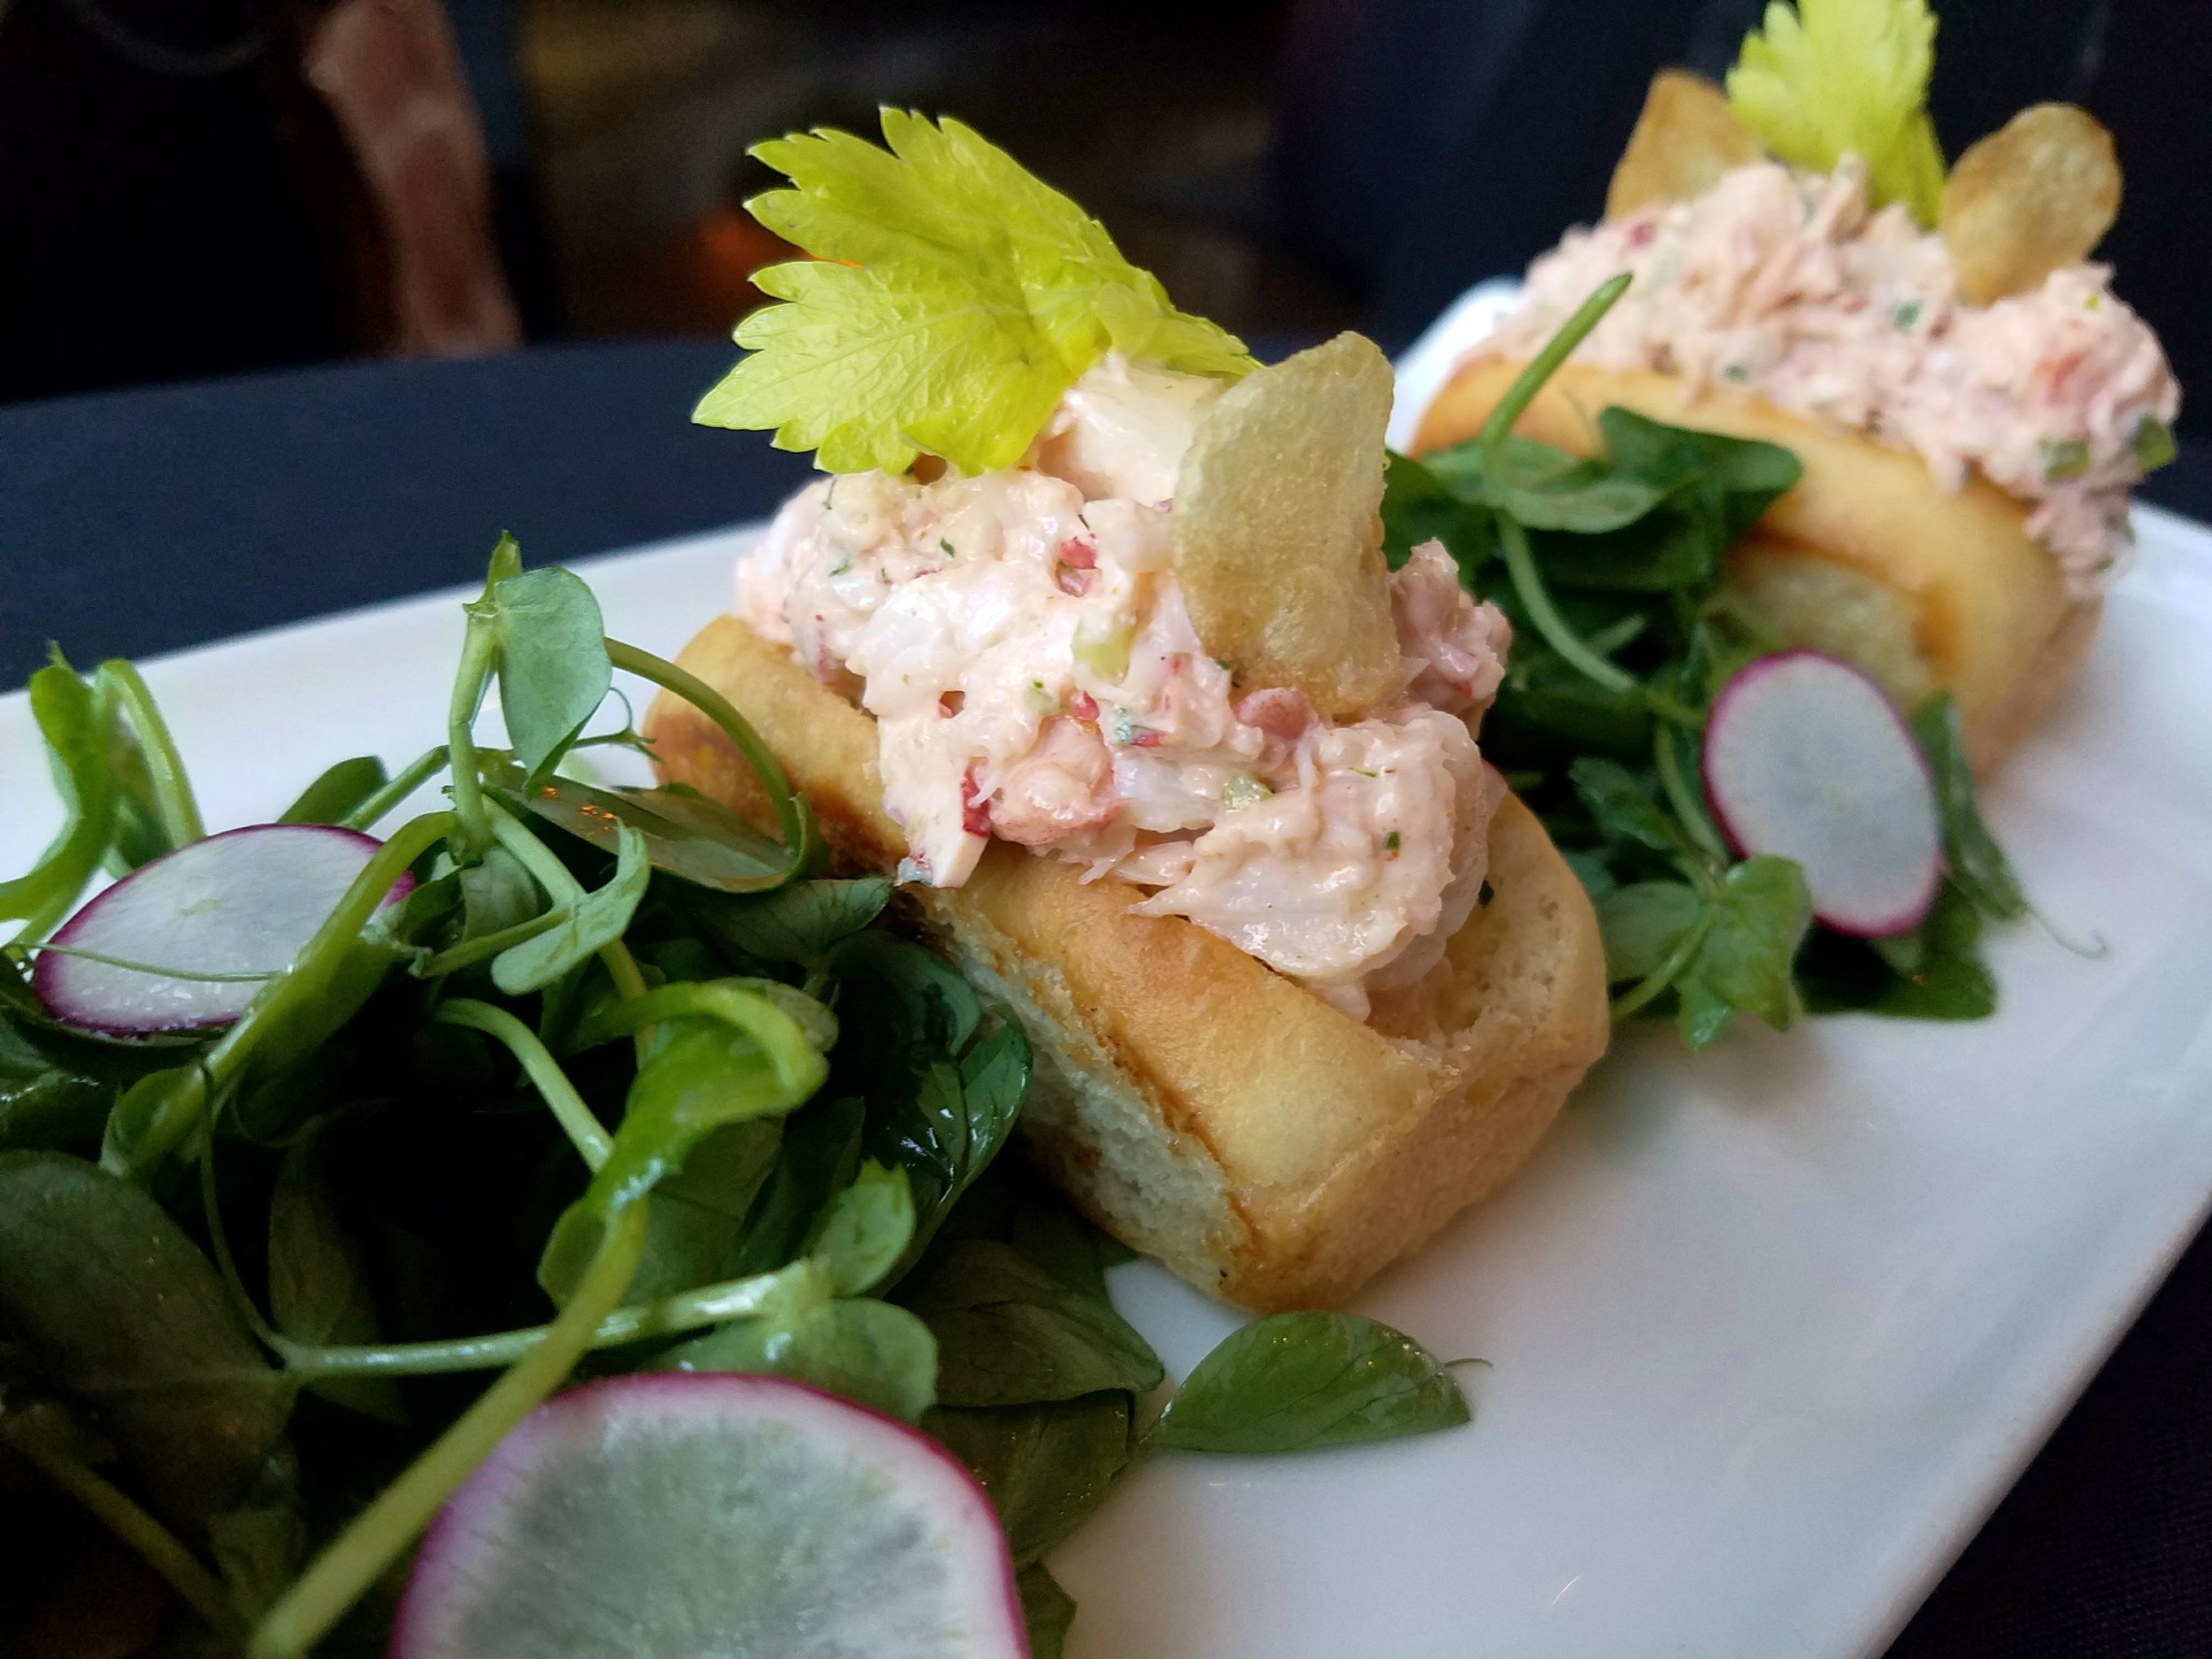 Mini lobster rolls with tarragon and celery